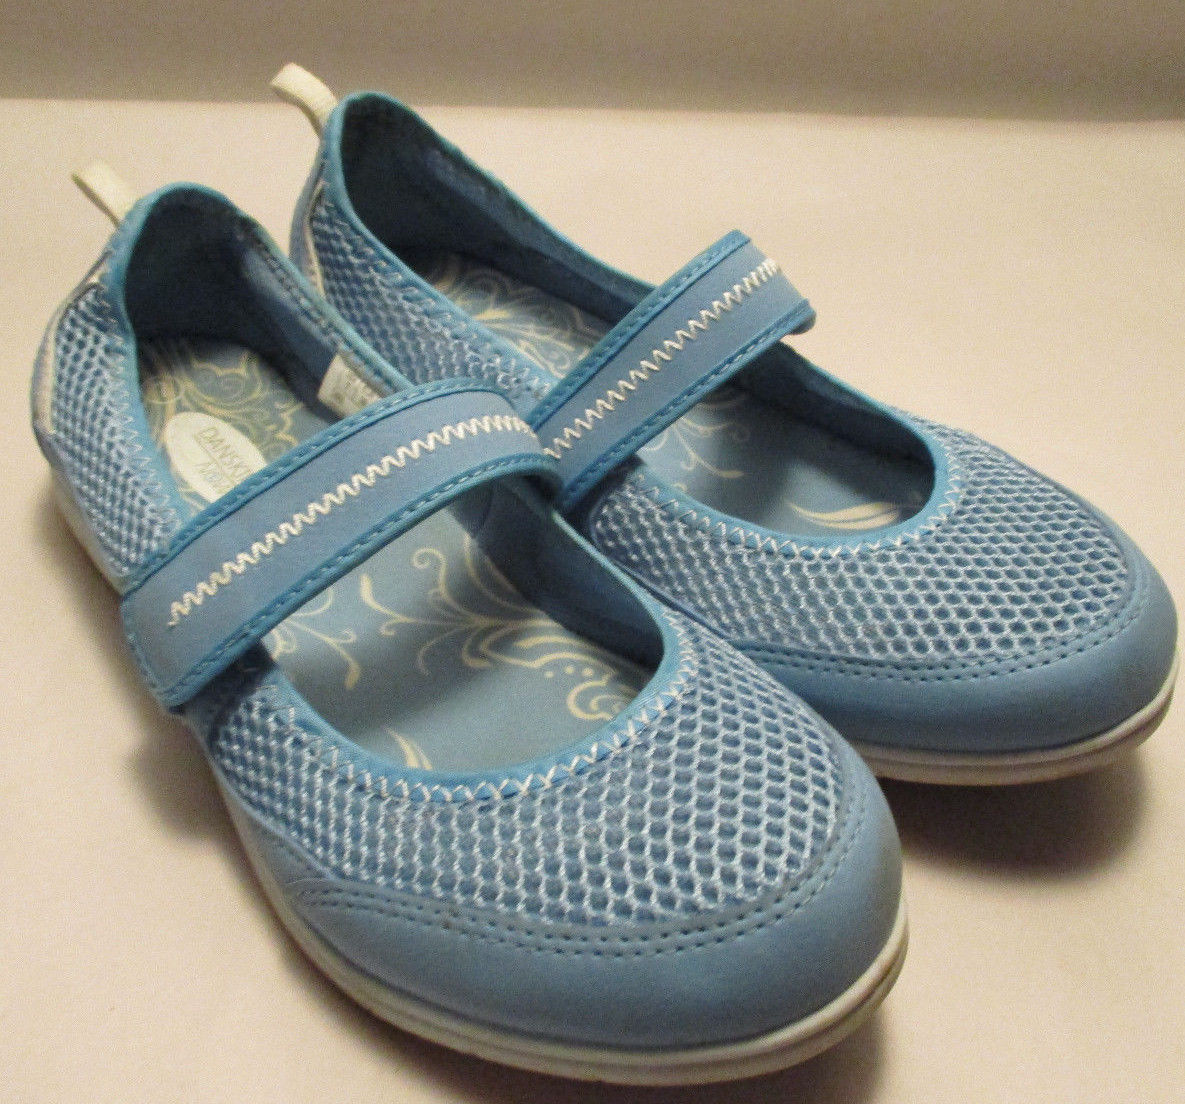 Danskin Now Chaka Womens 7M Light Blue Mary and 20 similar items